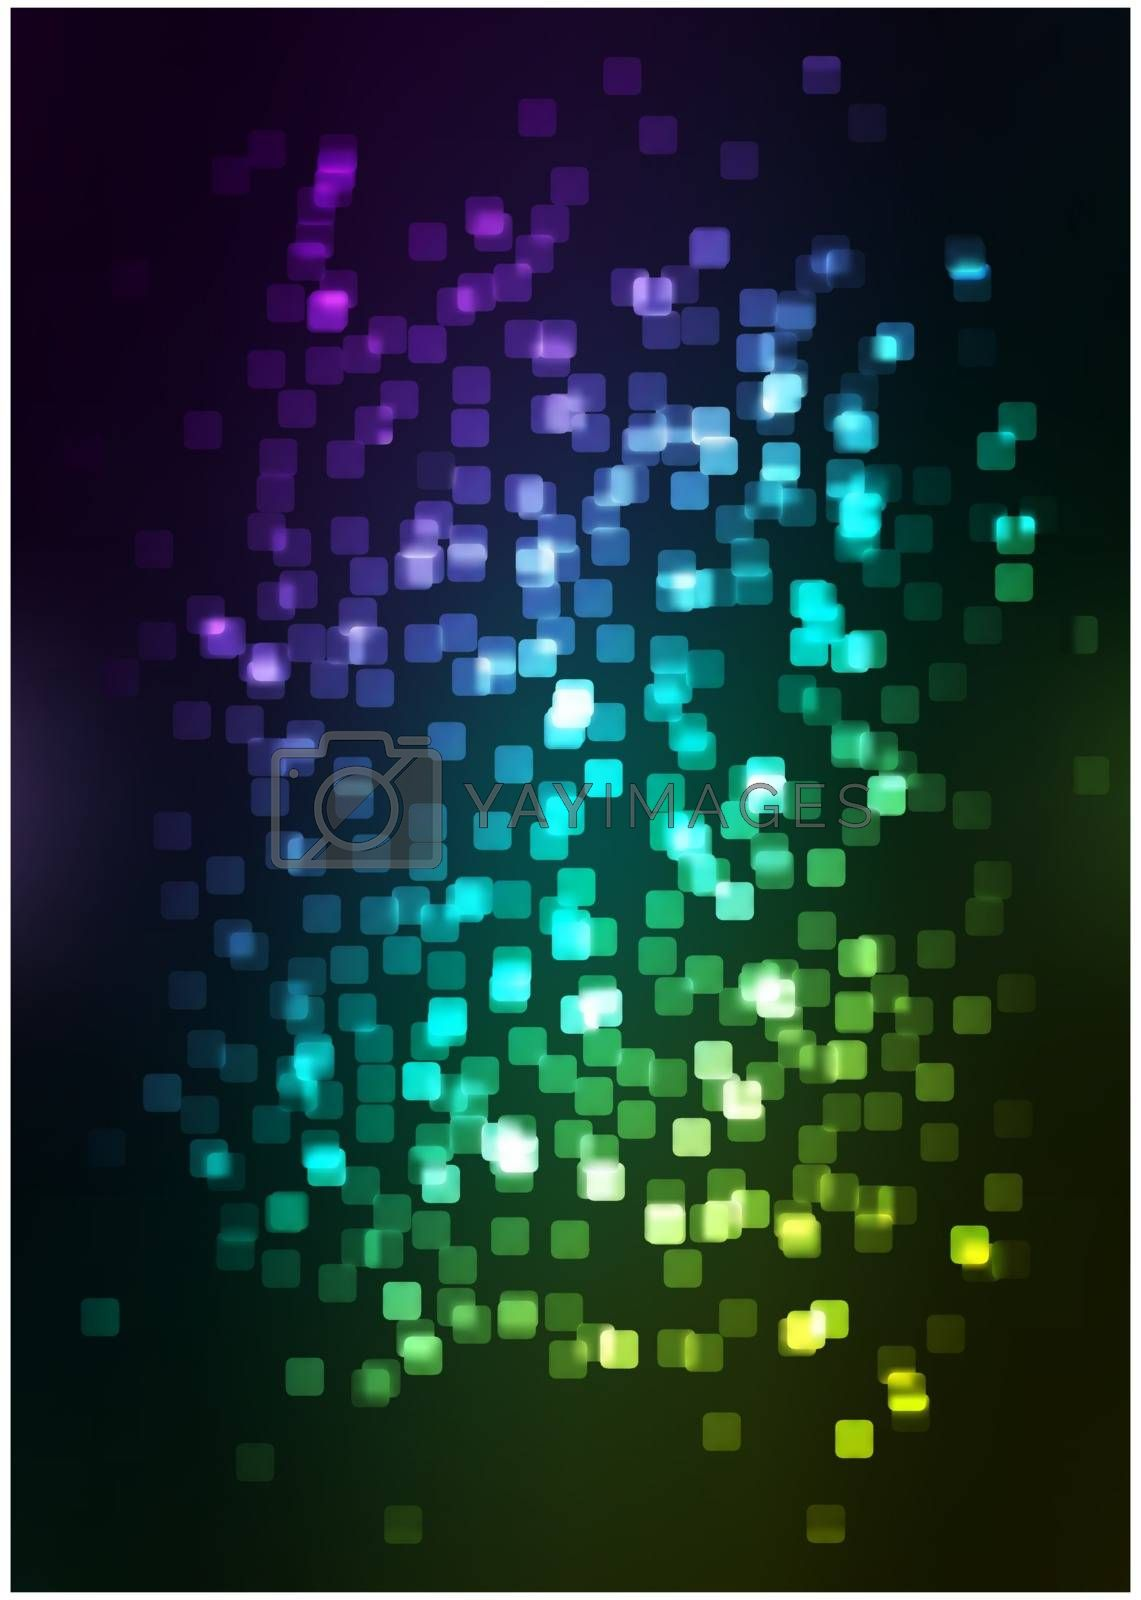 Royalty free image of Abstract colorful background. EPS 8 by Petrov_Vladimir